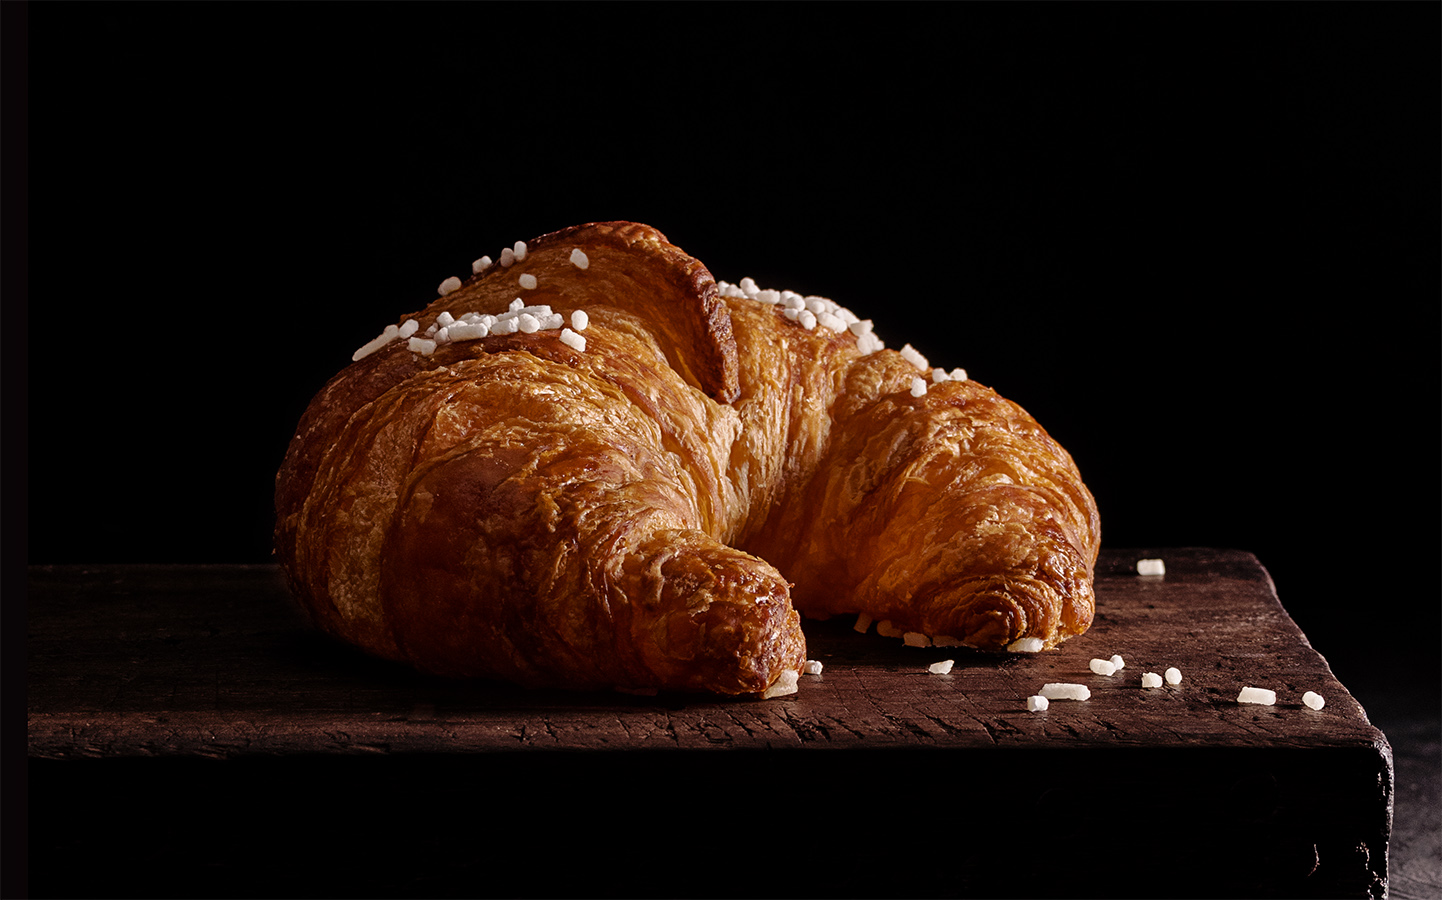 croissant, breakfast, pastry, food, sweet, dessert, bakery, meal, eat, snack, homemade, fresh, bakery, morning, snack, eating, bakery, fun, freshness